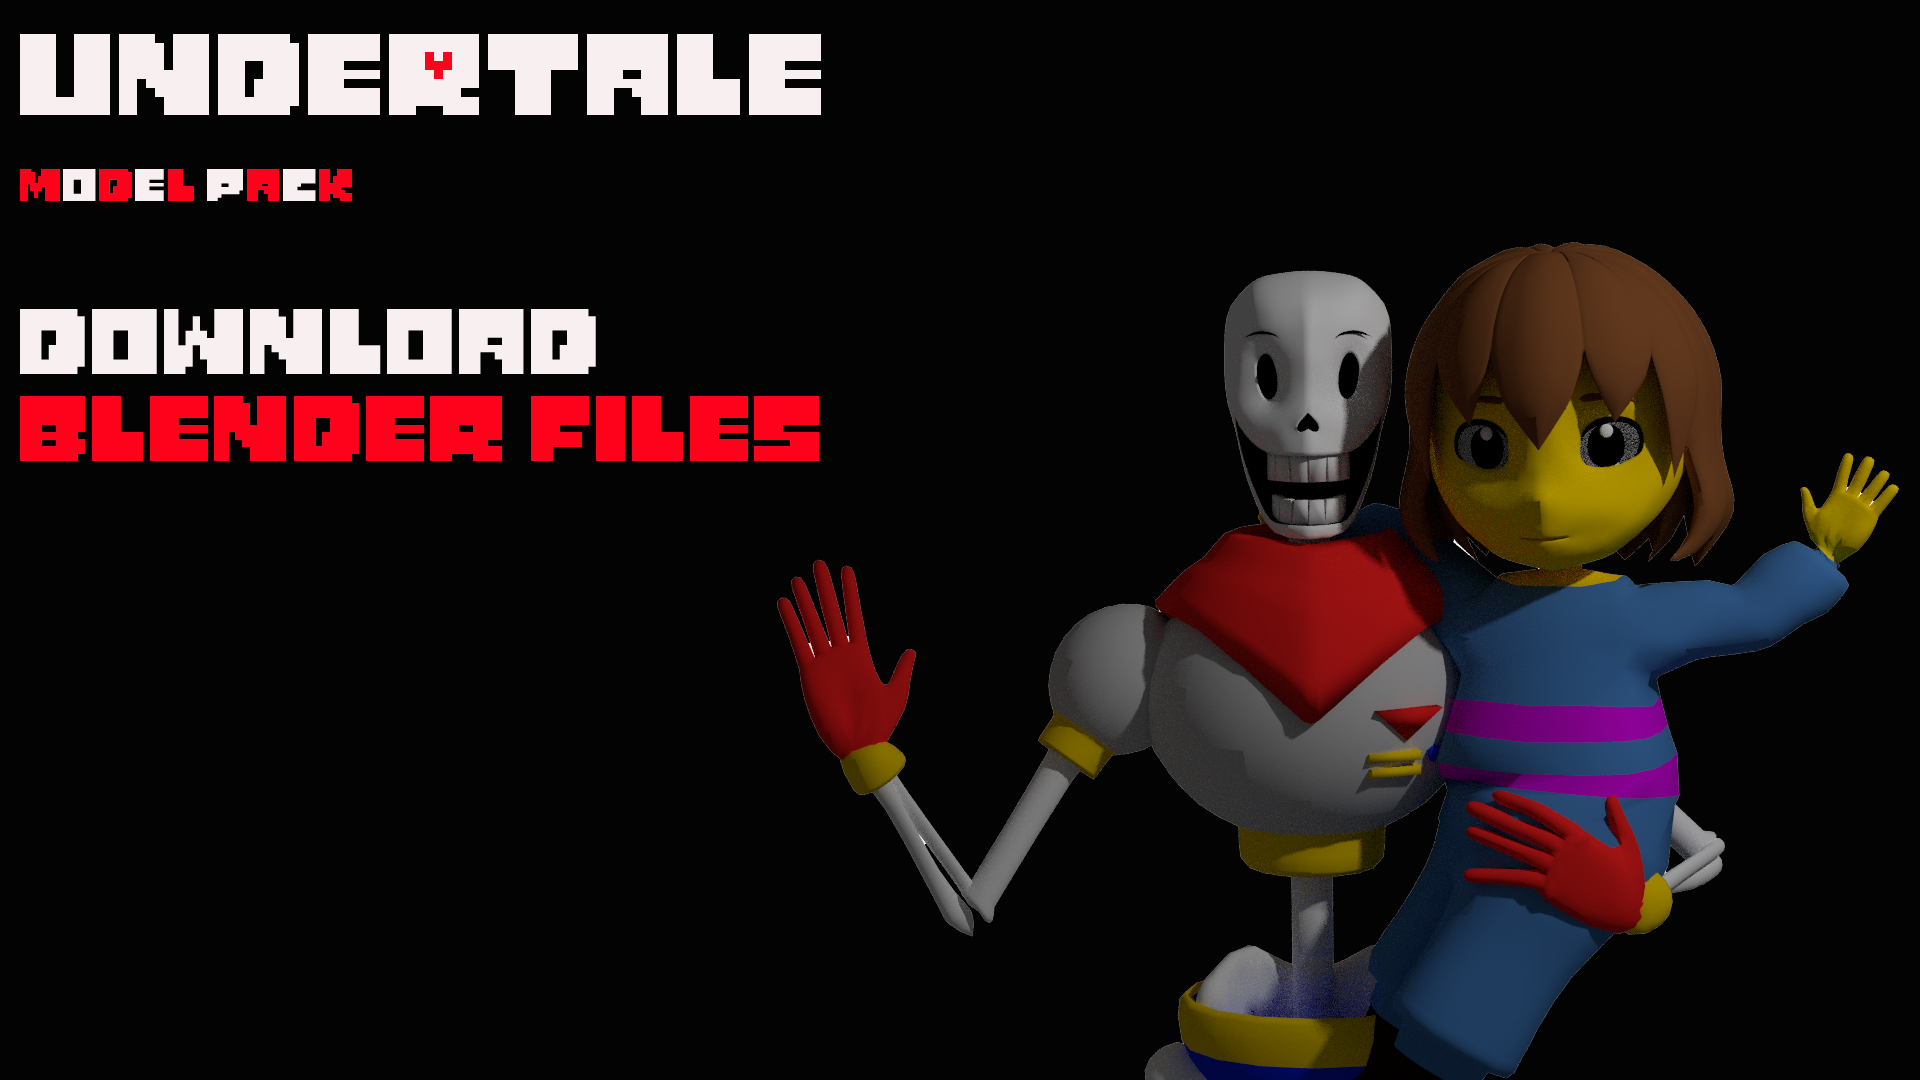 Undertale Model Pack DOWNLOAD Blender Files by AngryGal on